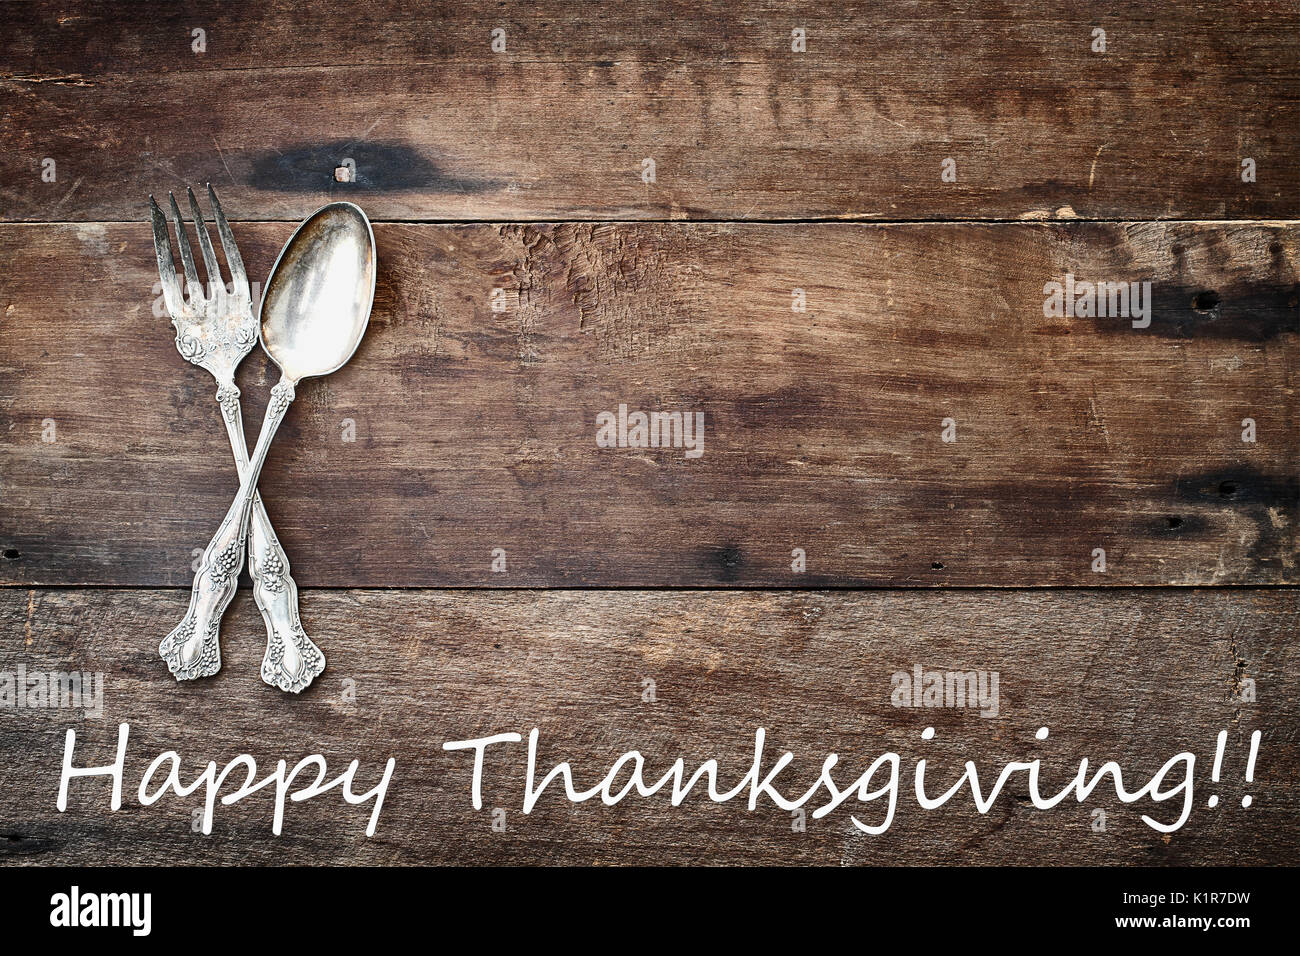 Antique Silverware Spoon And Fork Happy Thanksgiving Text Over A Rustic Old Wooden Background Image Shot From Overhead